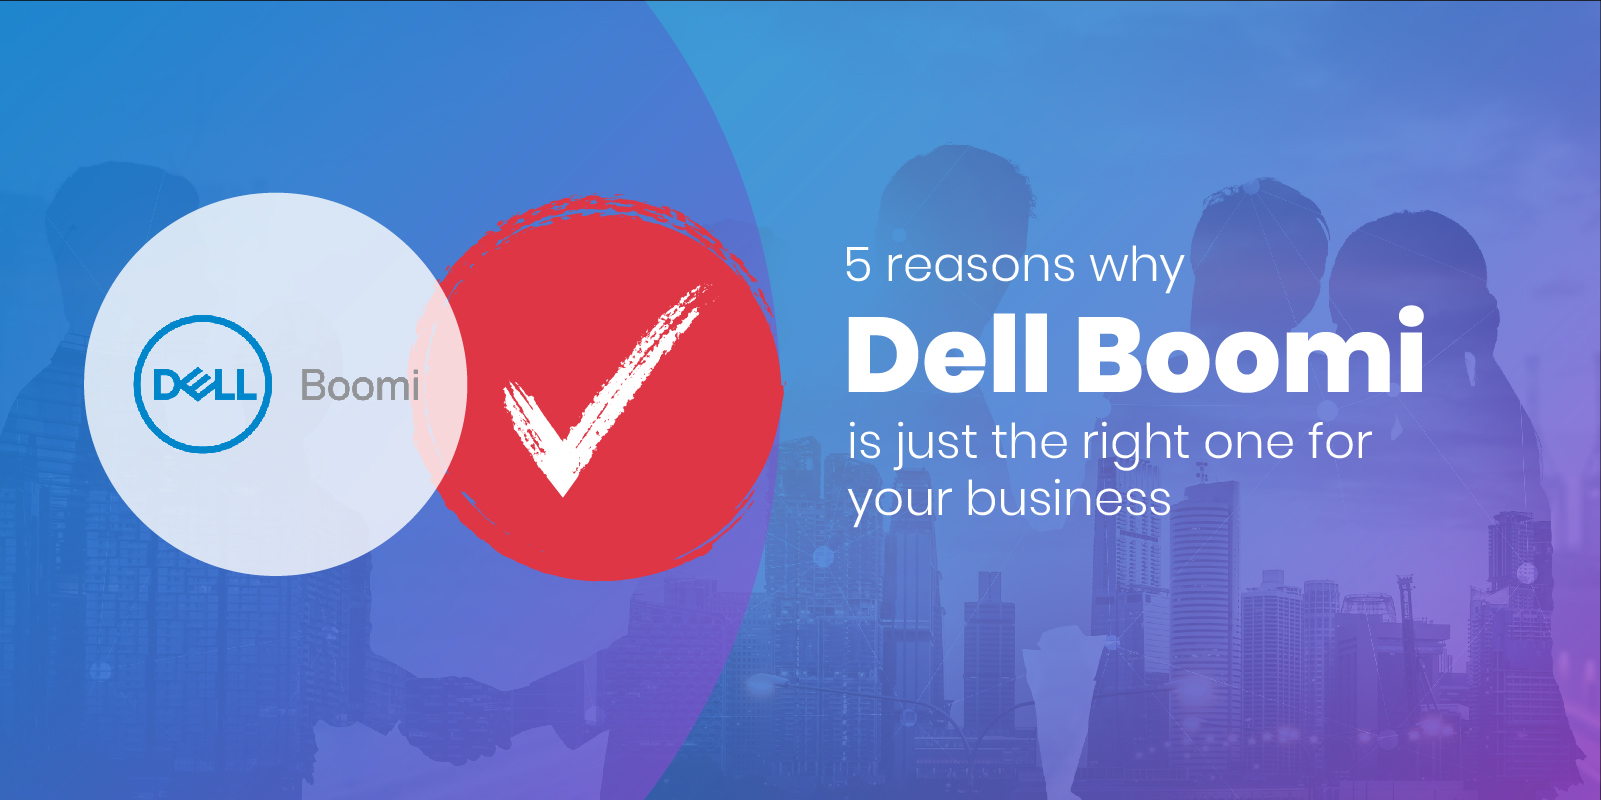 Top 5 most significant reasons why you should consider using Dell Boomi for your business.